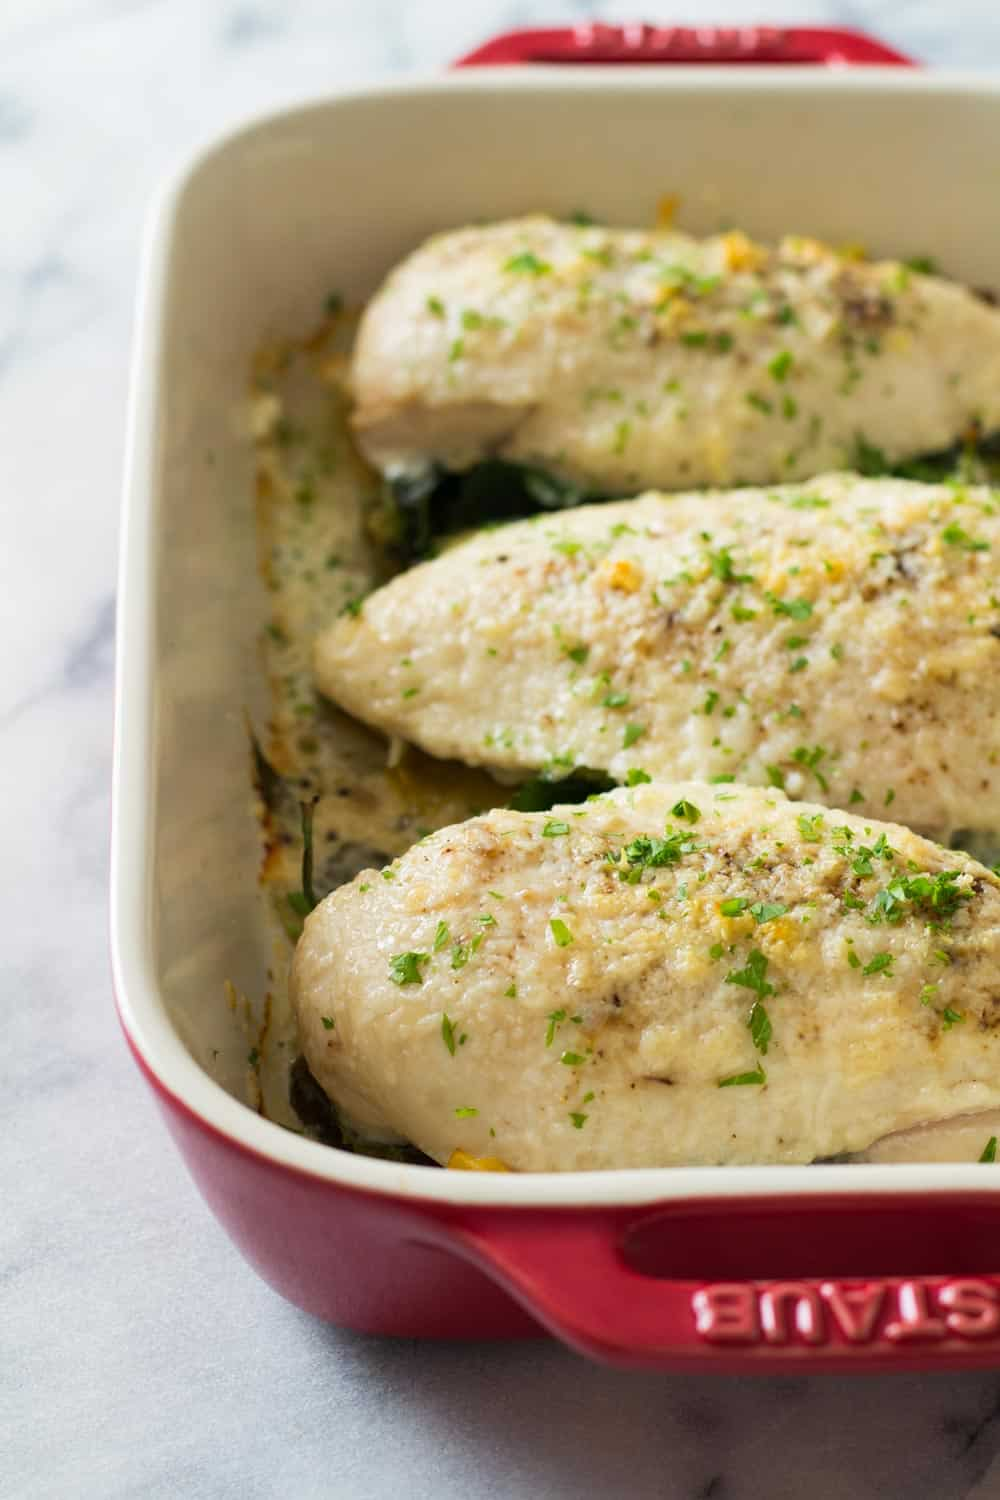 Baked spinach artichoke chiken breasts in a red baking dish.